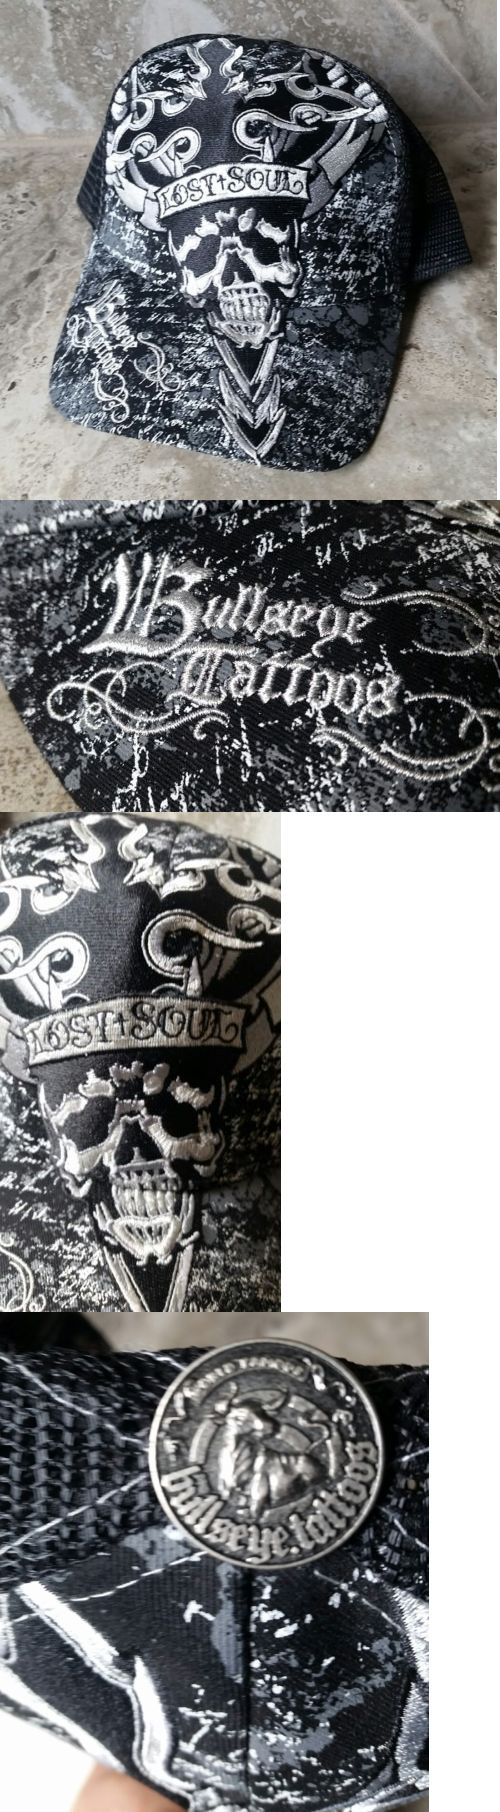 Hats and Headwear 159078: New Bullseye Tattoos Lost Soul Black Trucker Hat Snap Back -> BUY IT NOW ONLY: $30 on eBay!